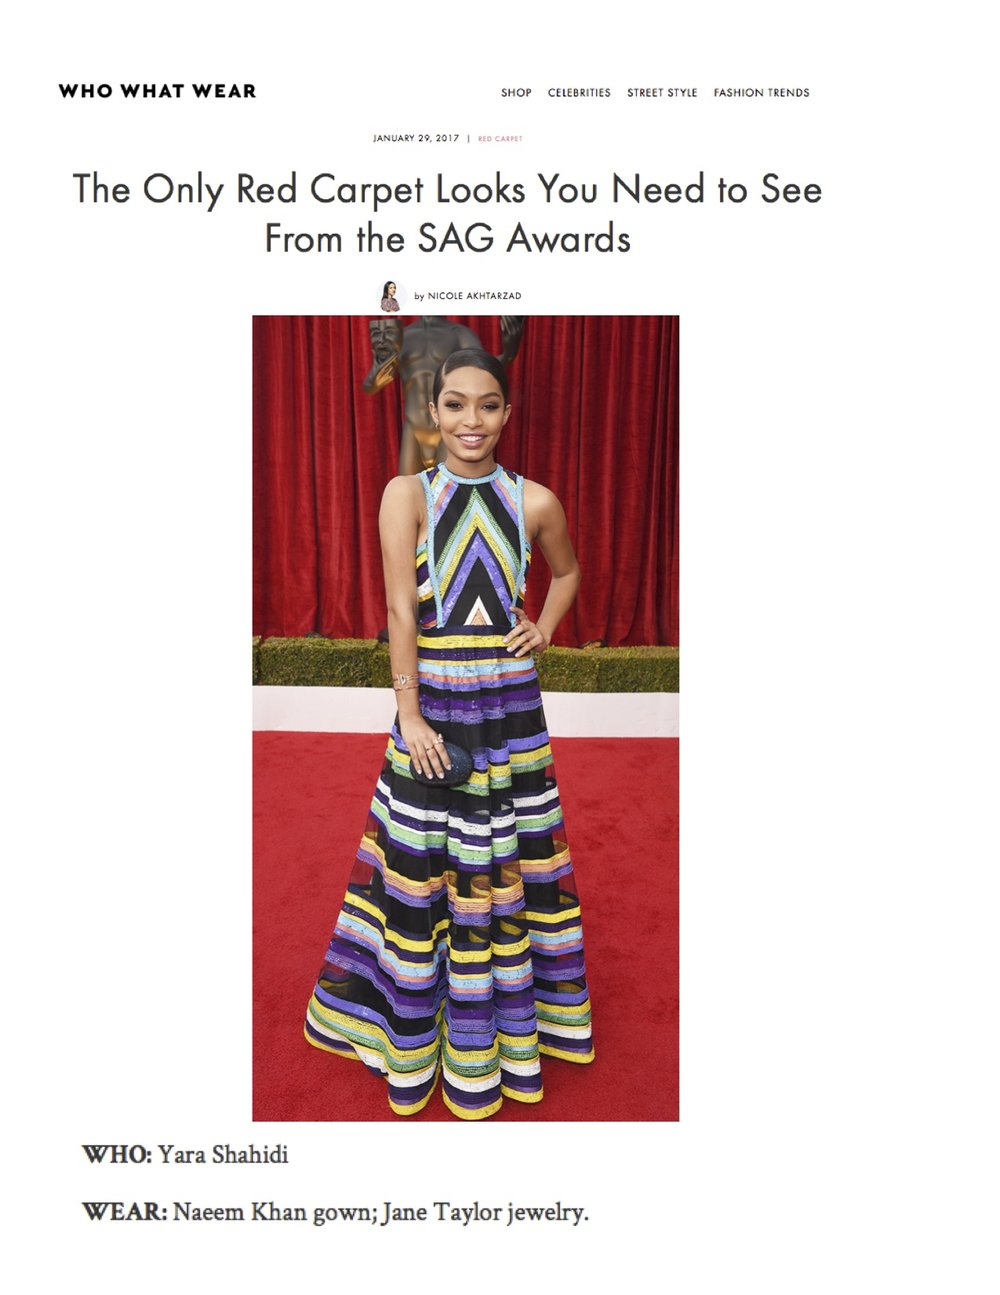 Yara Shahidi in Jane Taylor Earrings, Rings, and Bracelet at the 2017 SAG Awards - WhoWhatWear.com